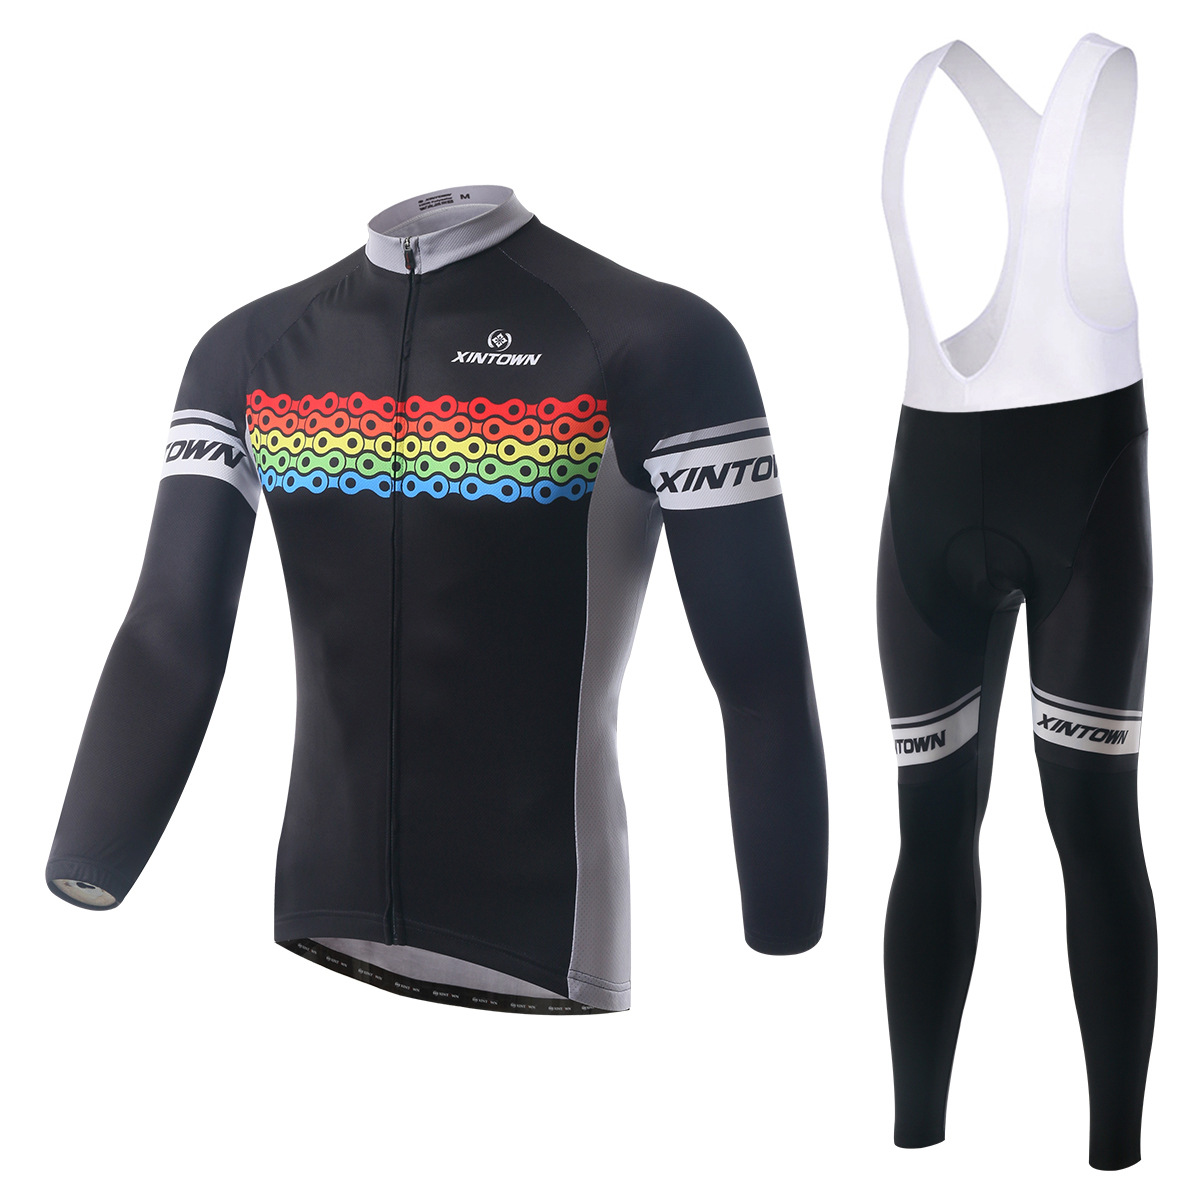 Cycling Set Long Sleeve Jersey and Bib Pants 3D Pad Pro Men Anti-sweat Bicycle Chain Pattern Ciclismo MTB Bike Suit Bicicleta teleyi men cycling jersey bike long sleeve outdoor bike jersey bicycle clothing wear breathable padded bib pants set s 4xl